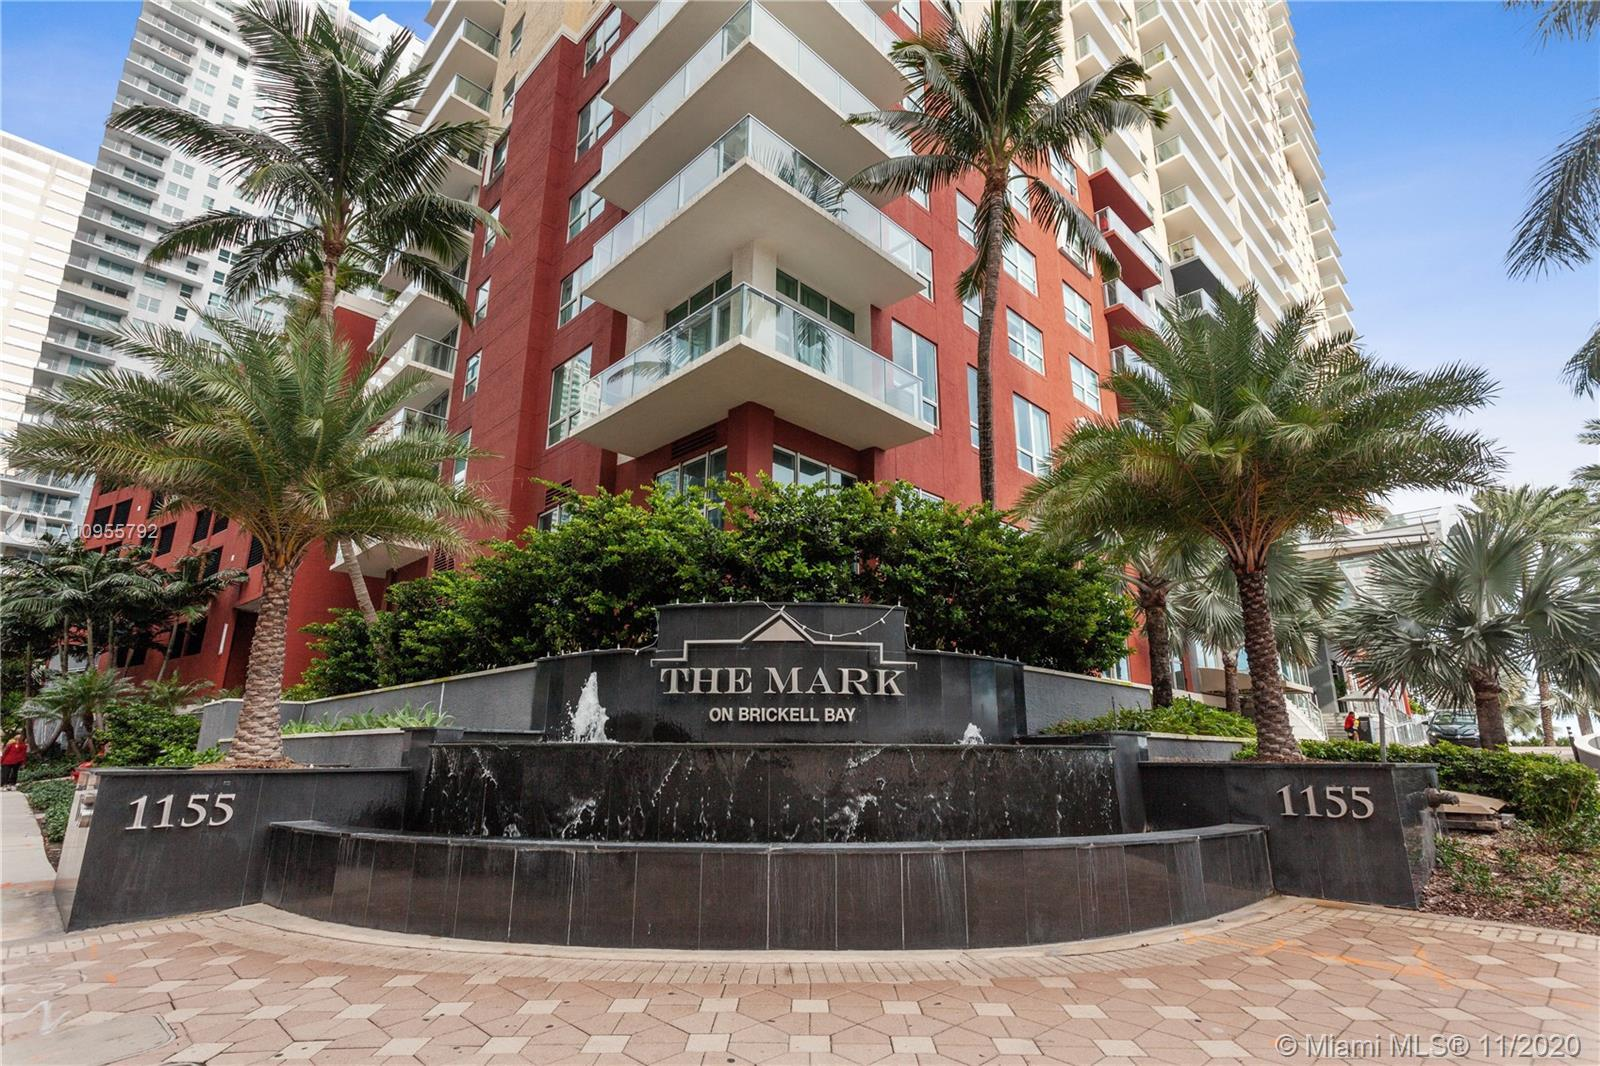 Amazing Biscayne Bay views from this one bedroom residence at The Mark on Brickell Bay Dr. Apartment